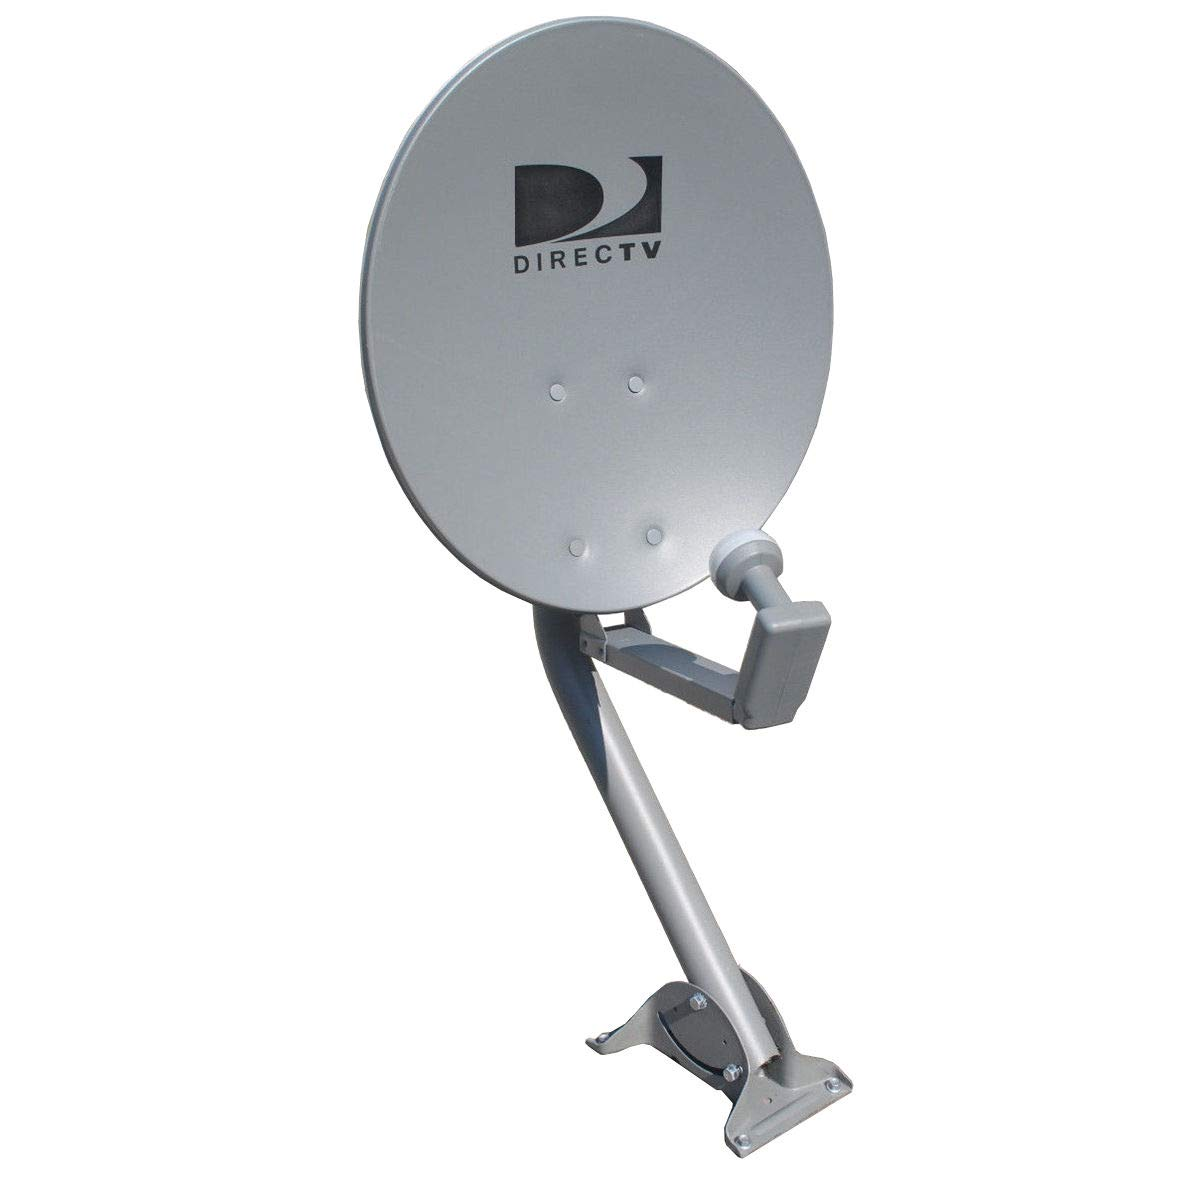 DirecTv 18-Inch Satellite Dish by DIRECTV